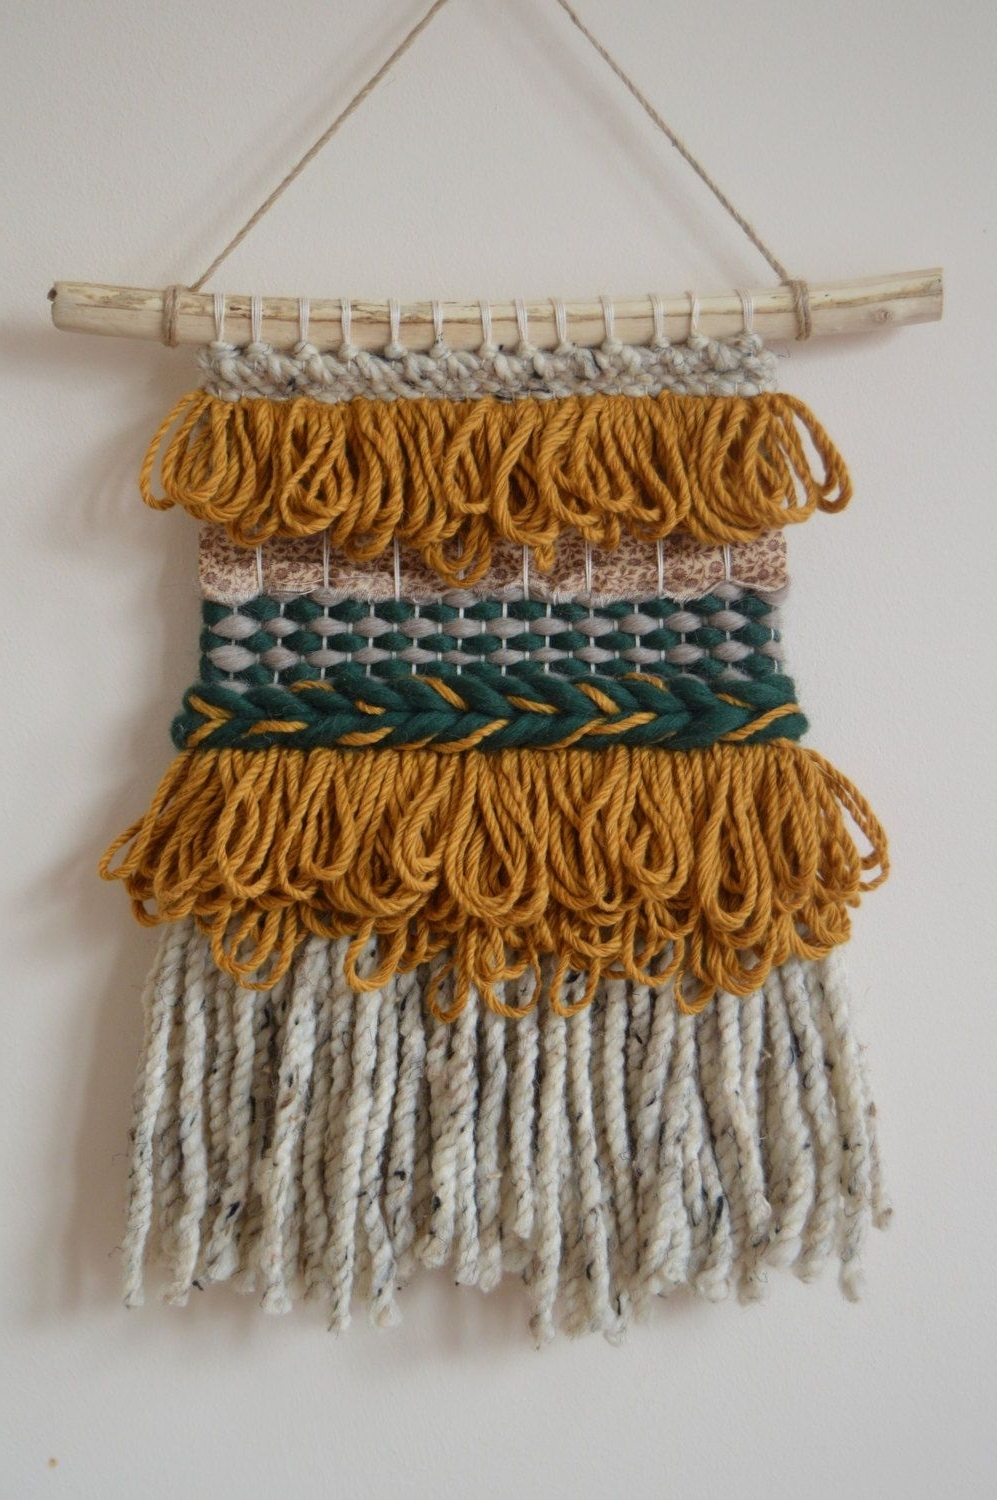 Woven Wall Hanging, Textile Wall Art, Mustard Wall Hanging, Woven With Well Liked Hanging Textile Wall Art (View 15 of 15)